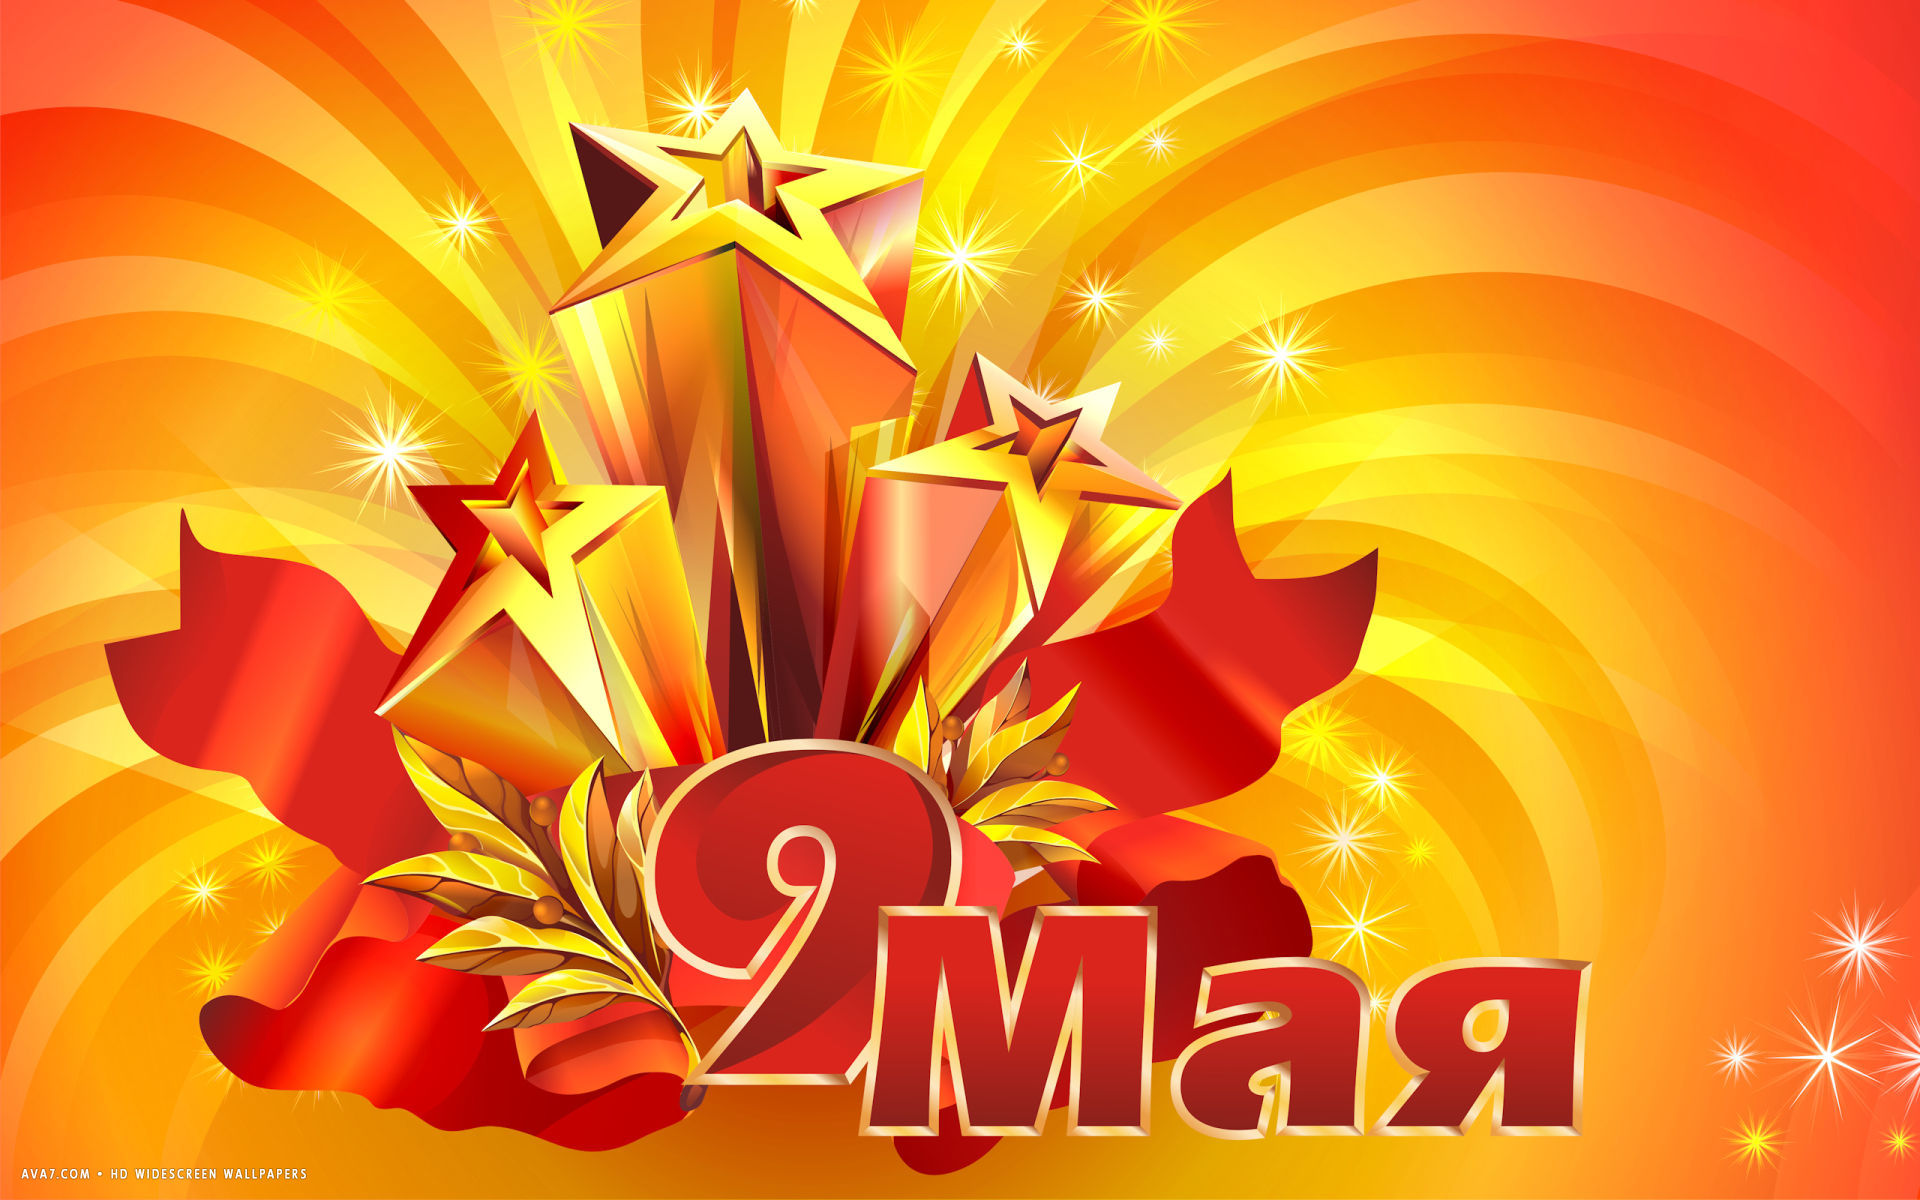 Wallpaper Victory Day Russia Holidays Hd Celebrations: Victory Day 9 May Stars Abstract Art Holiday Hd Widescreen